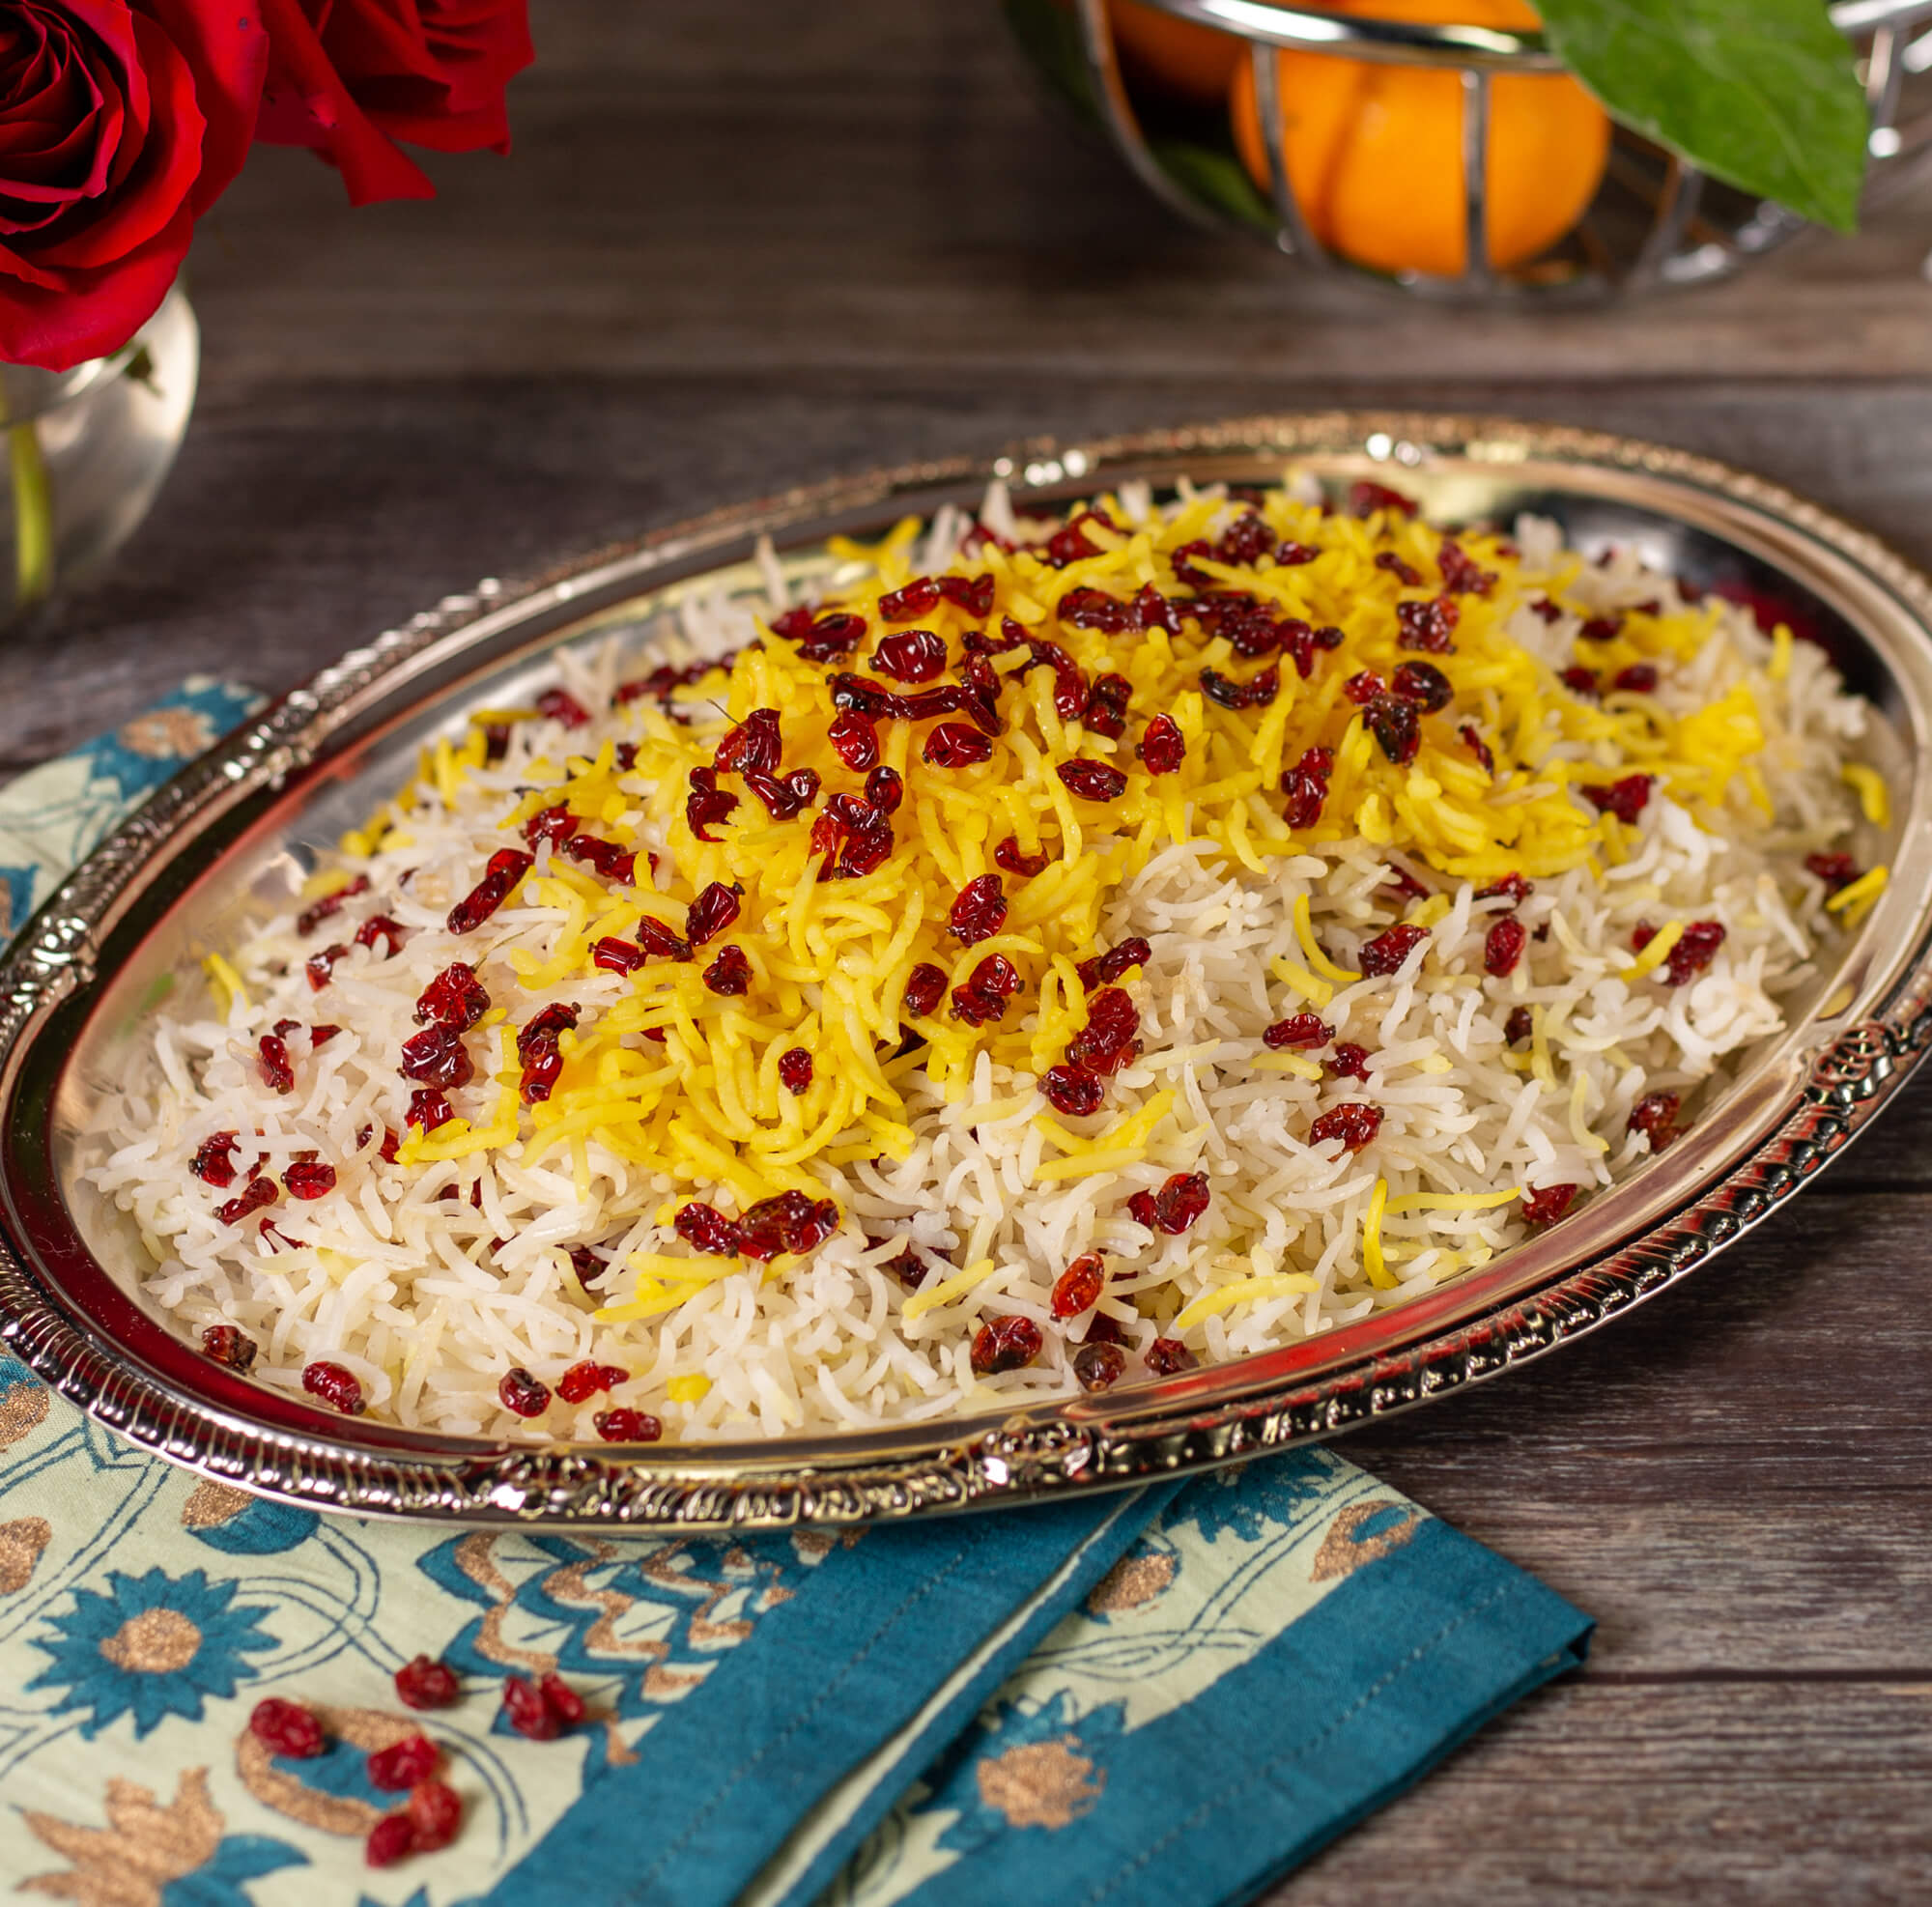 Zershk Polo (Barberry Rice)